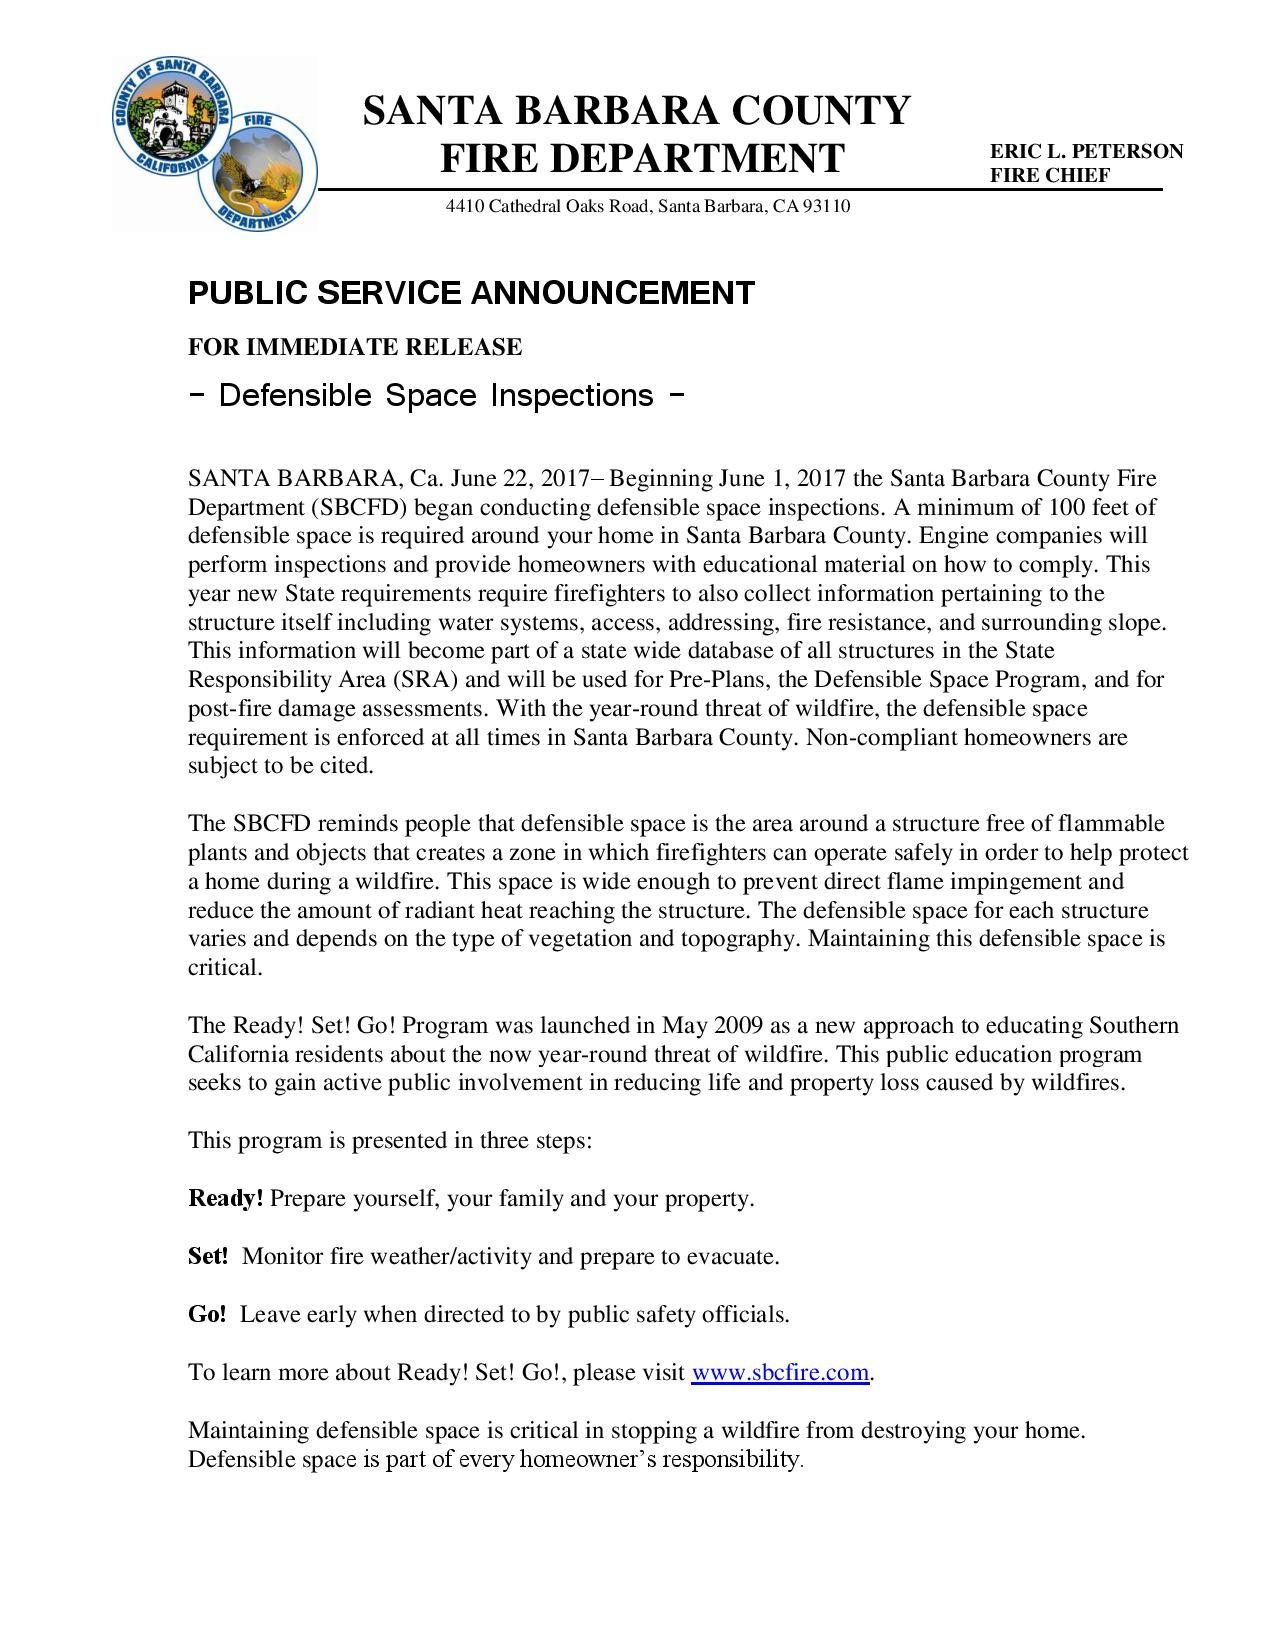 Defensible Space Inspections-pg1